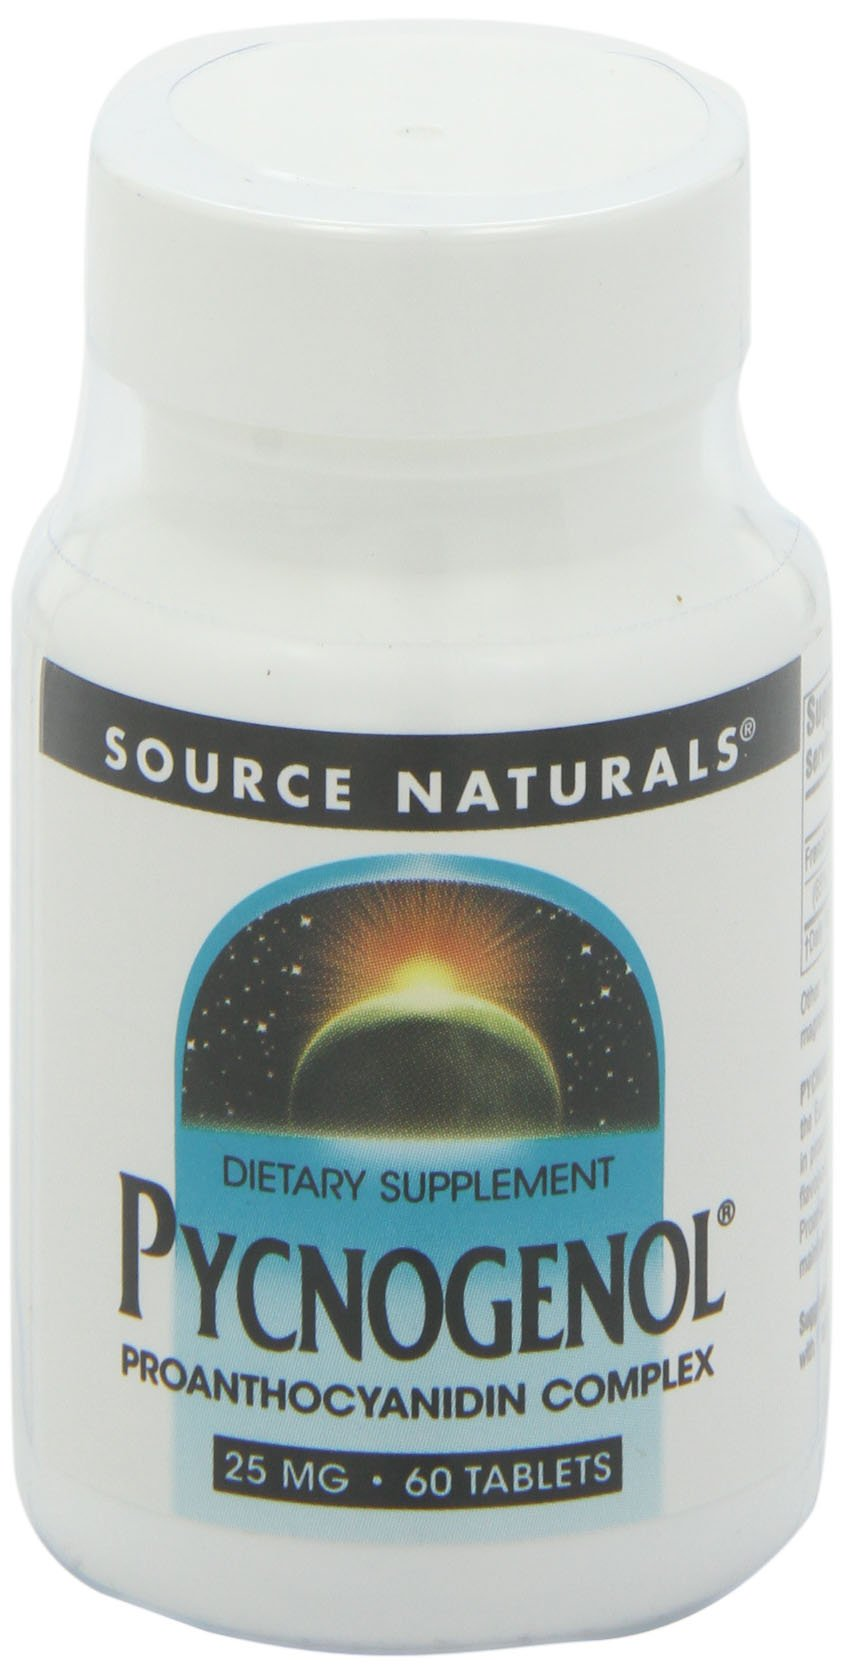 Source Naturals Pycnogenol 25mg Proanthocyanidin Complex Herbal Antioxidant, French Maritime Pine Bark Extract - 60 Tablets